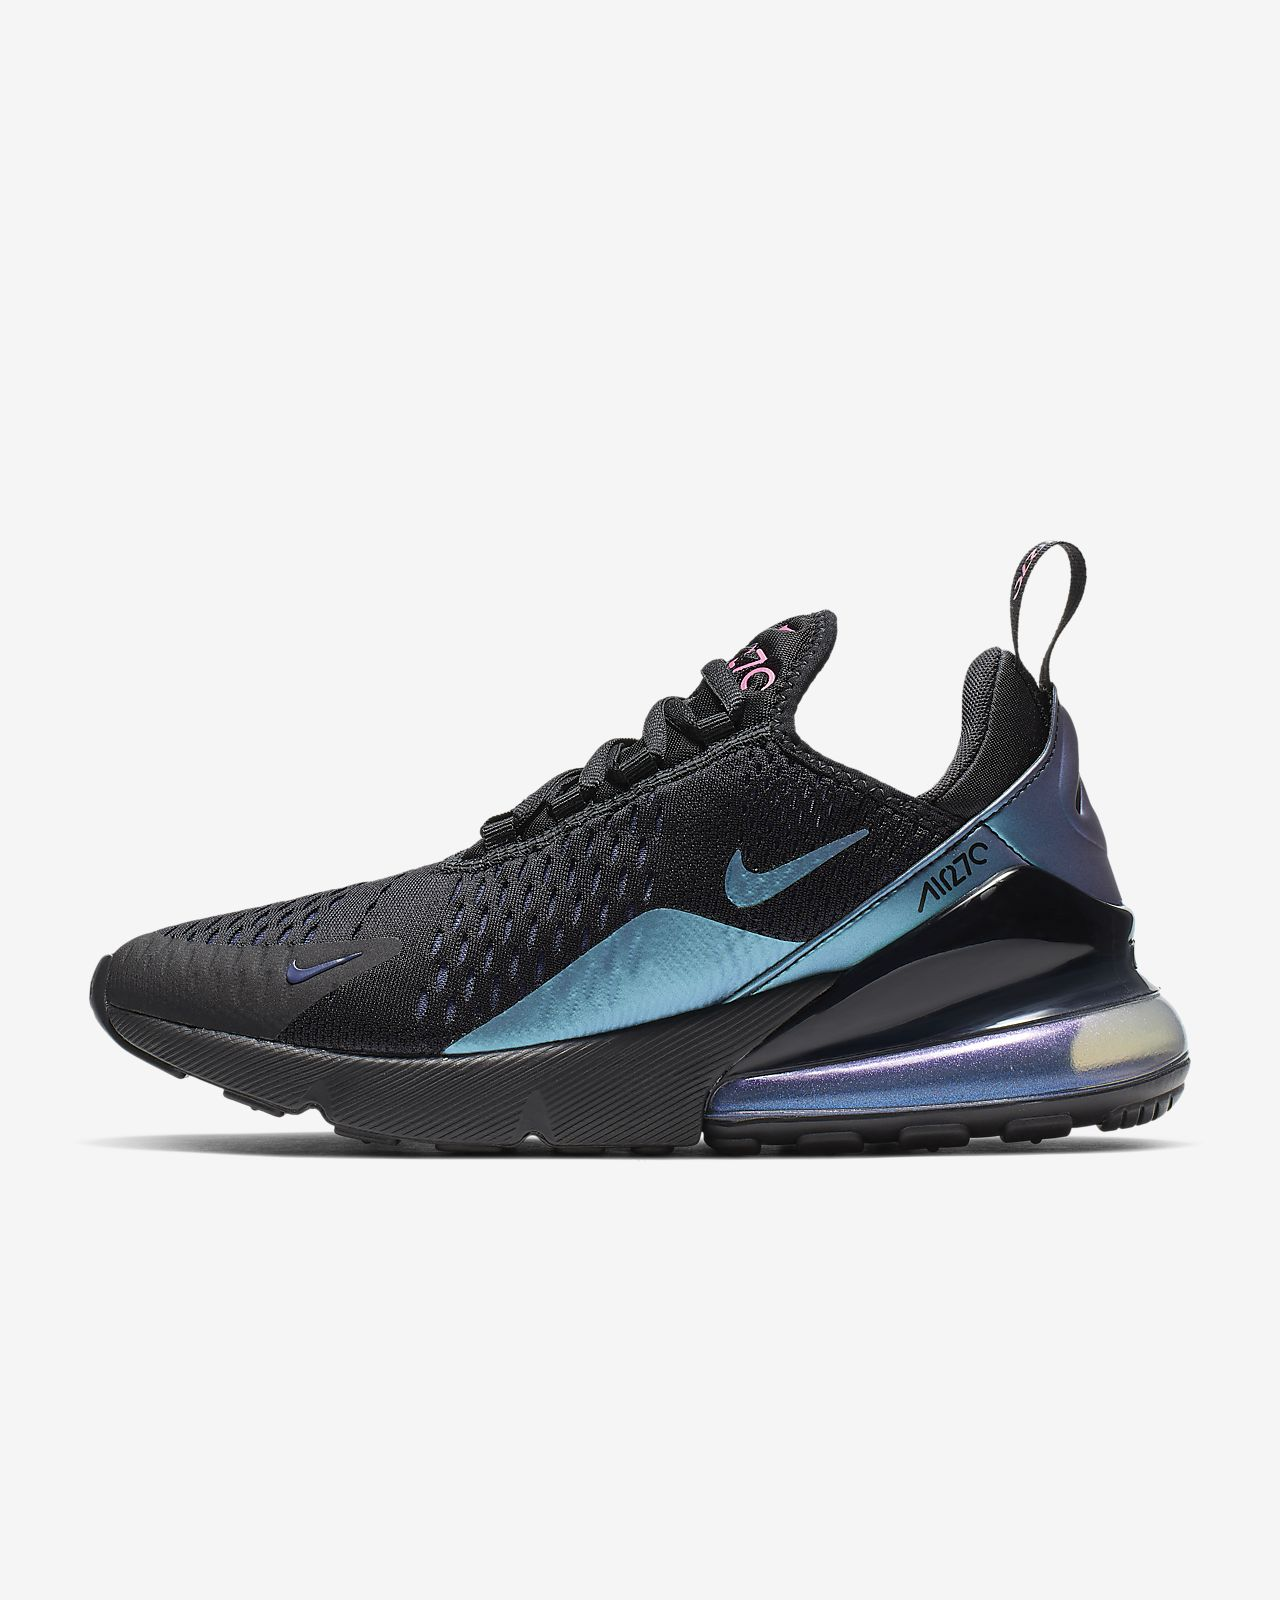 6b902617cf73 Nike Air Max 270 Women s Shoe. Nike.com GB